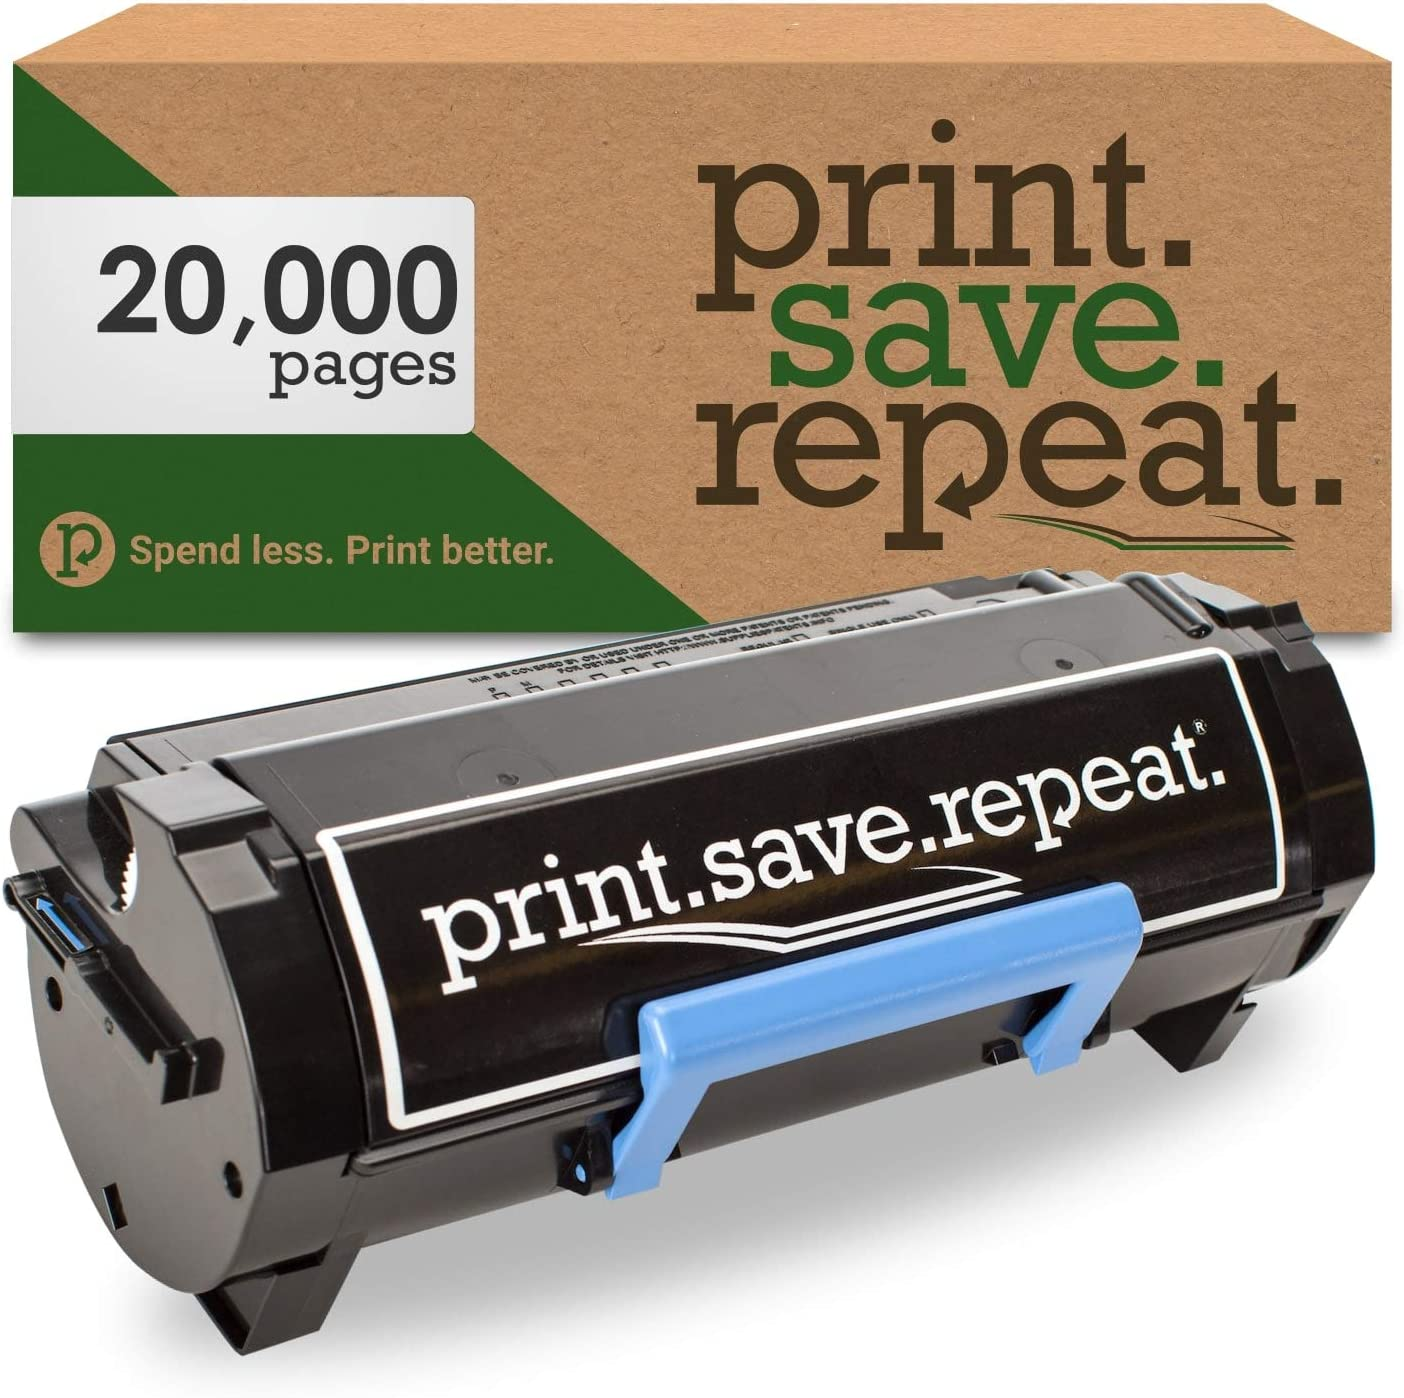 Print.Save.Repeat. Dell 9GG2G Extra High Yield Remanufactured Toner Cartridge for B3460 [20,000 Pages]